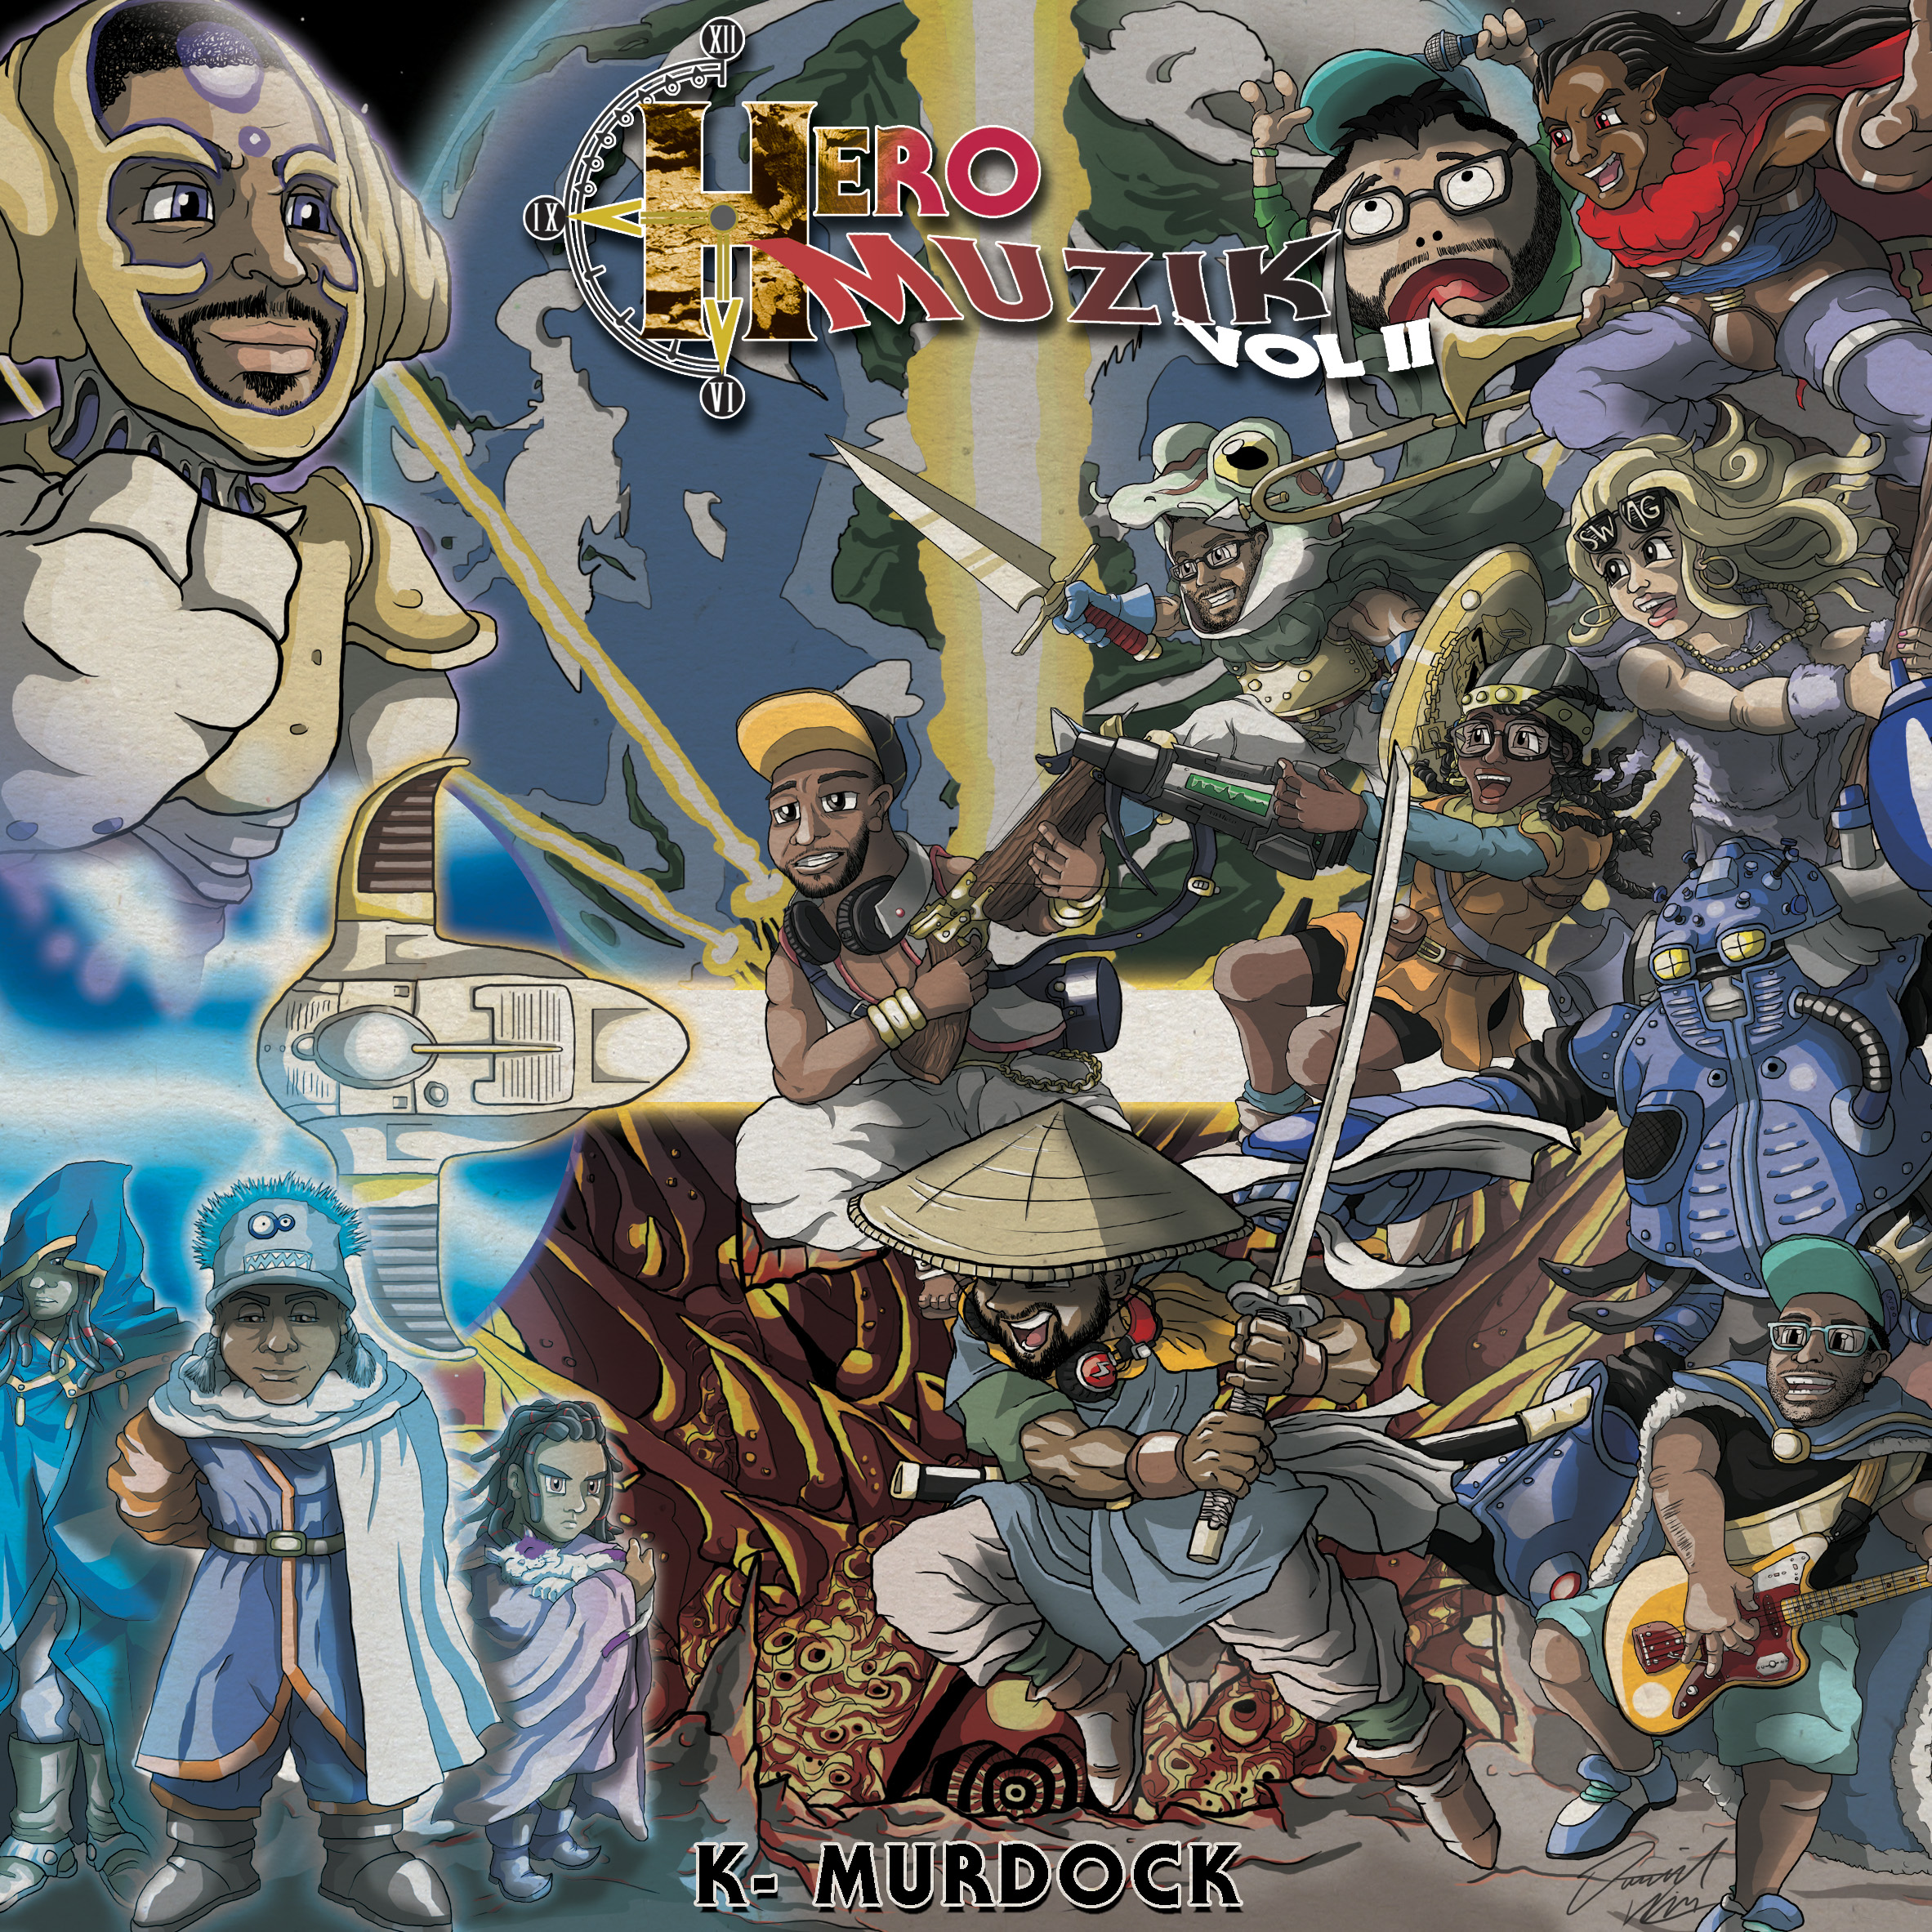 HERO MUZIK Vol. 2 by K-Murdock  was probably THE most ambitious album art i created this year. Tying in a year after the Chrono Trigger 20th anniversary, this tribute allowed me to characterize all the artists involved to create this epic showdown of talent.